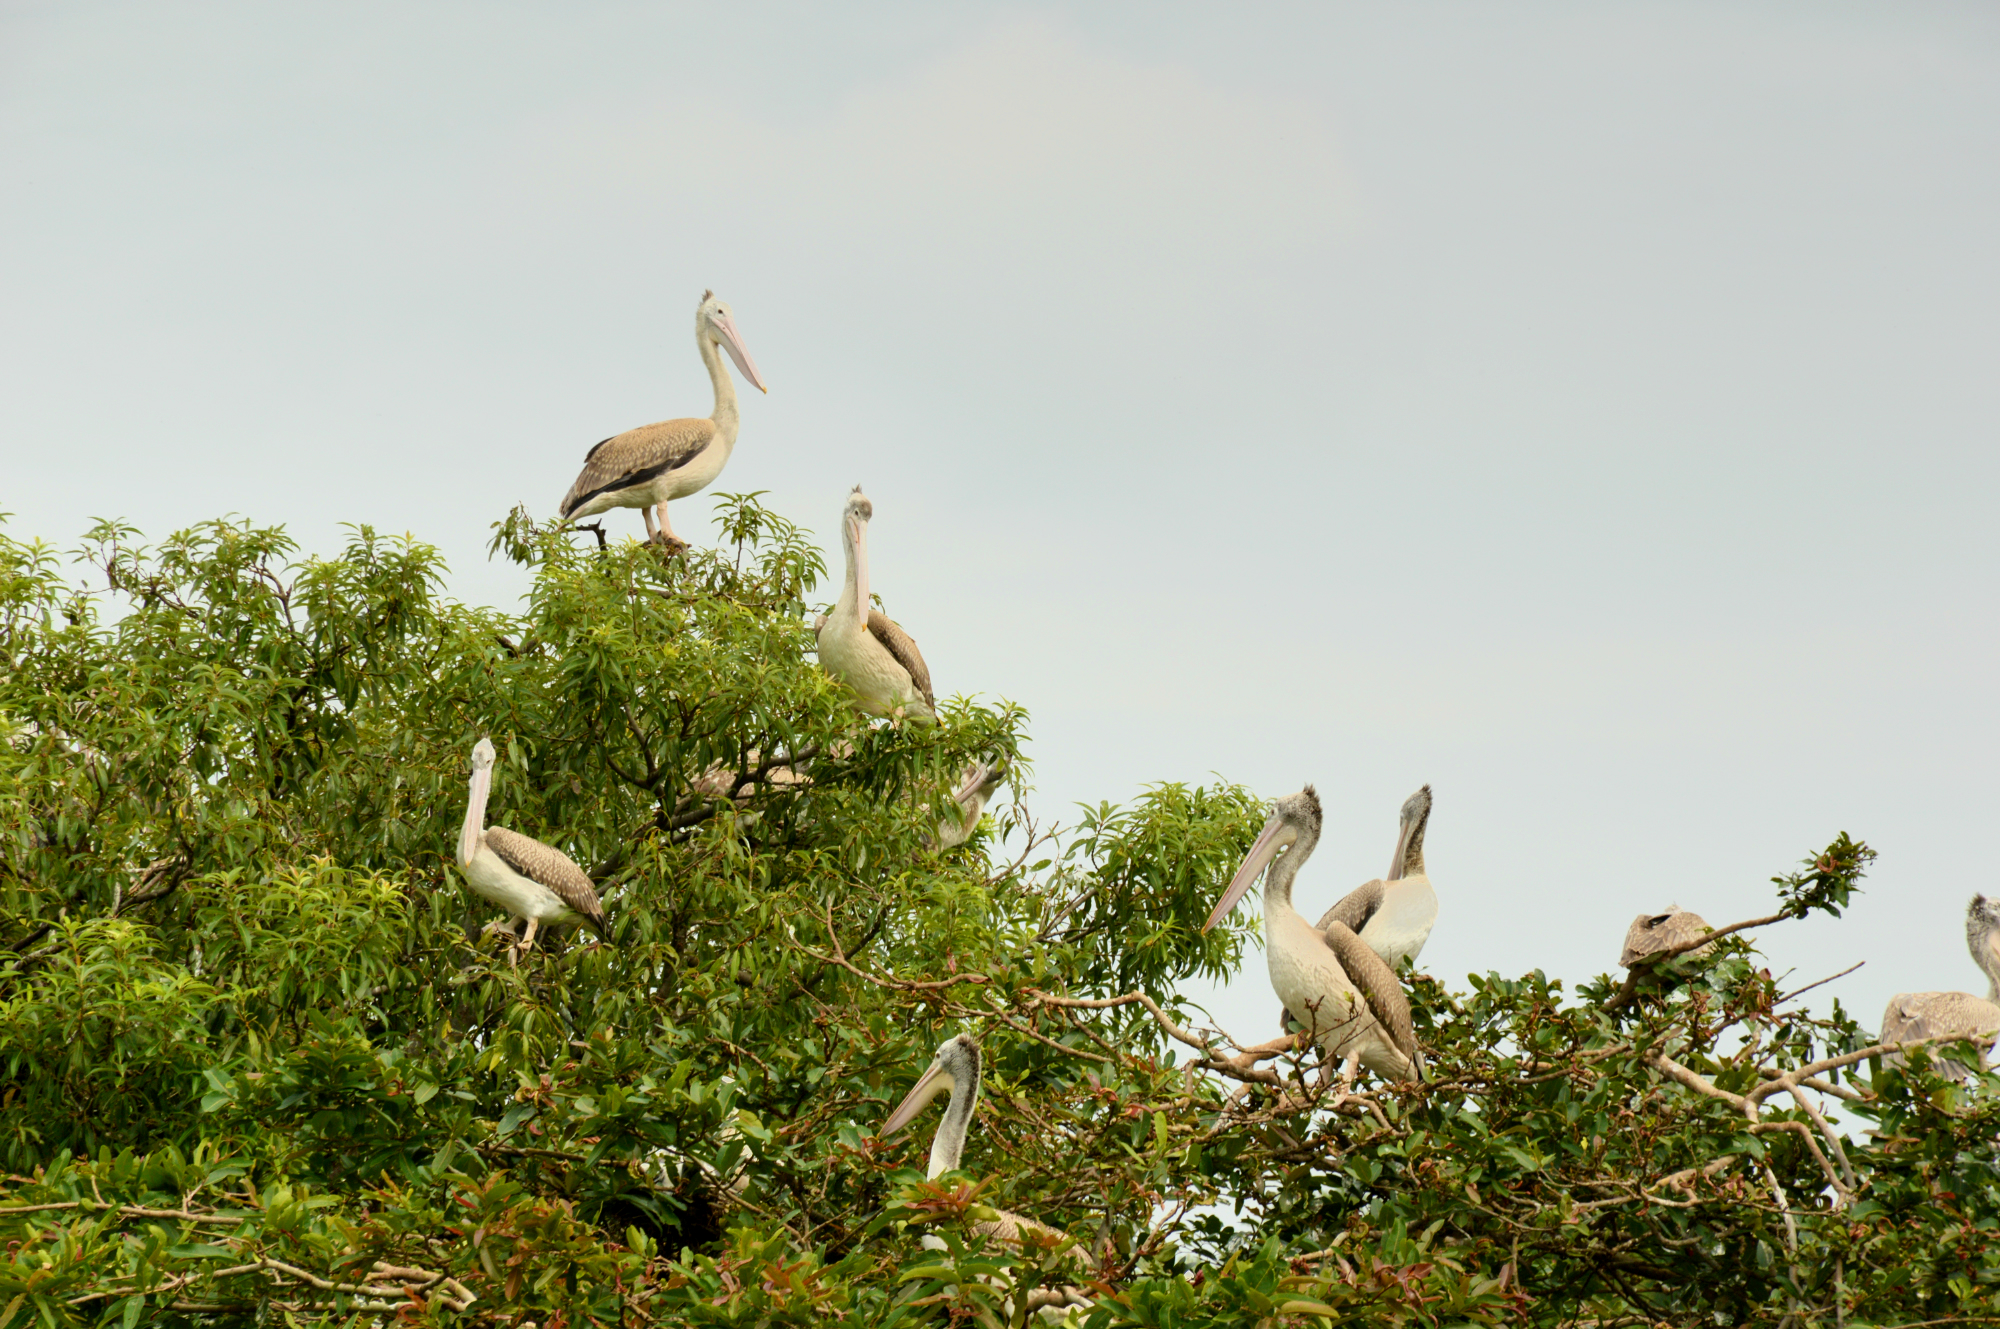 UNDERSTANDING INDIA: RANGANATHITTU BIRD SANCTUARY